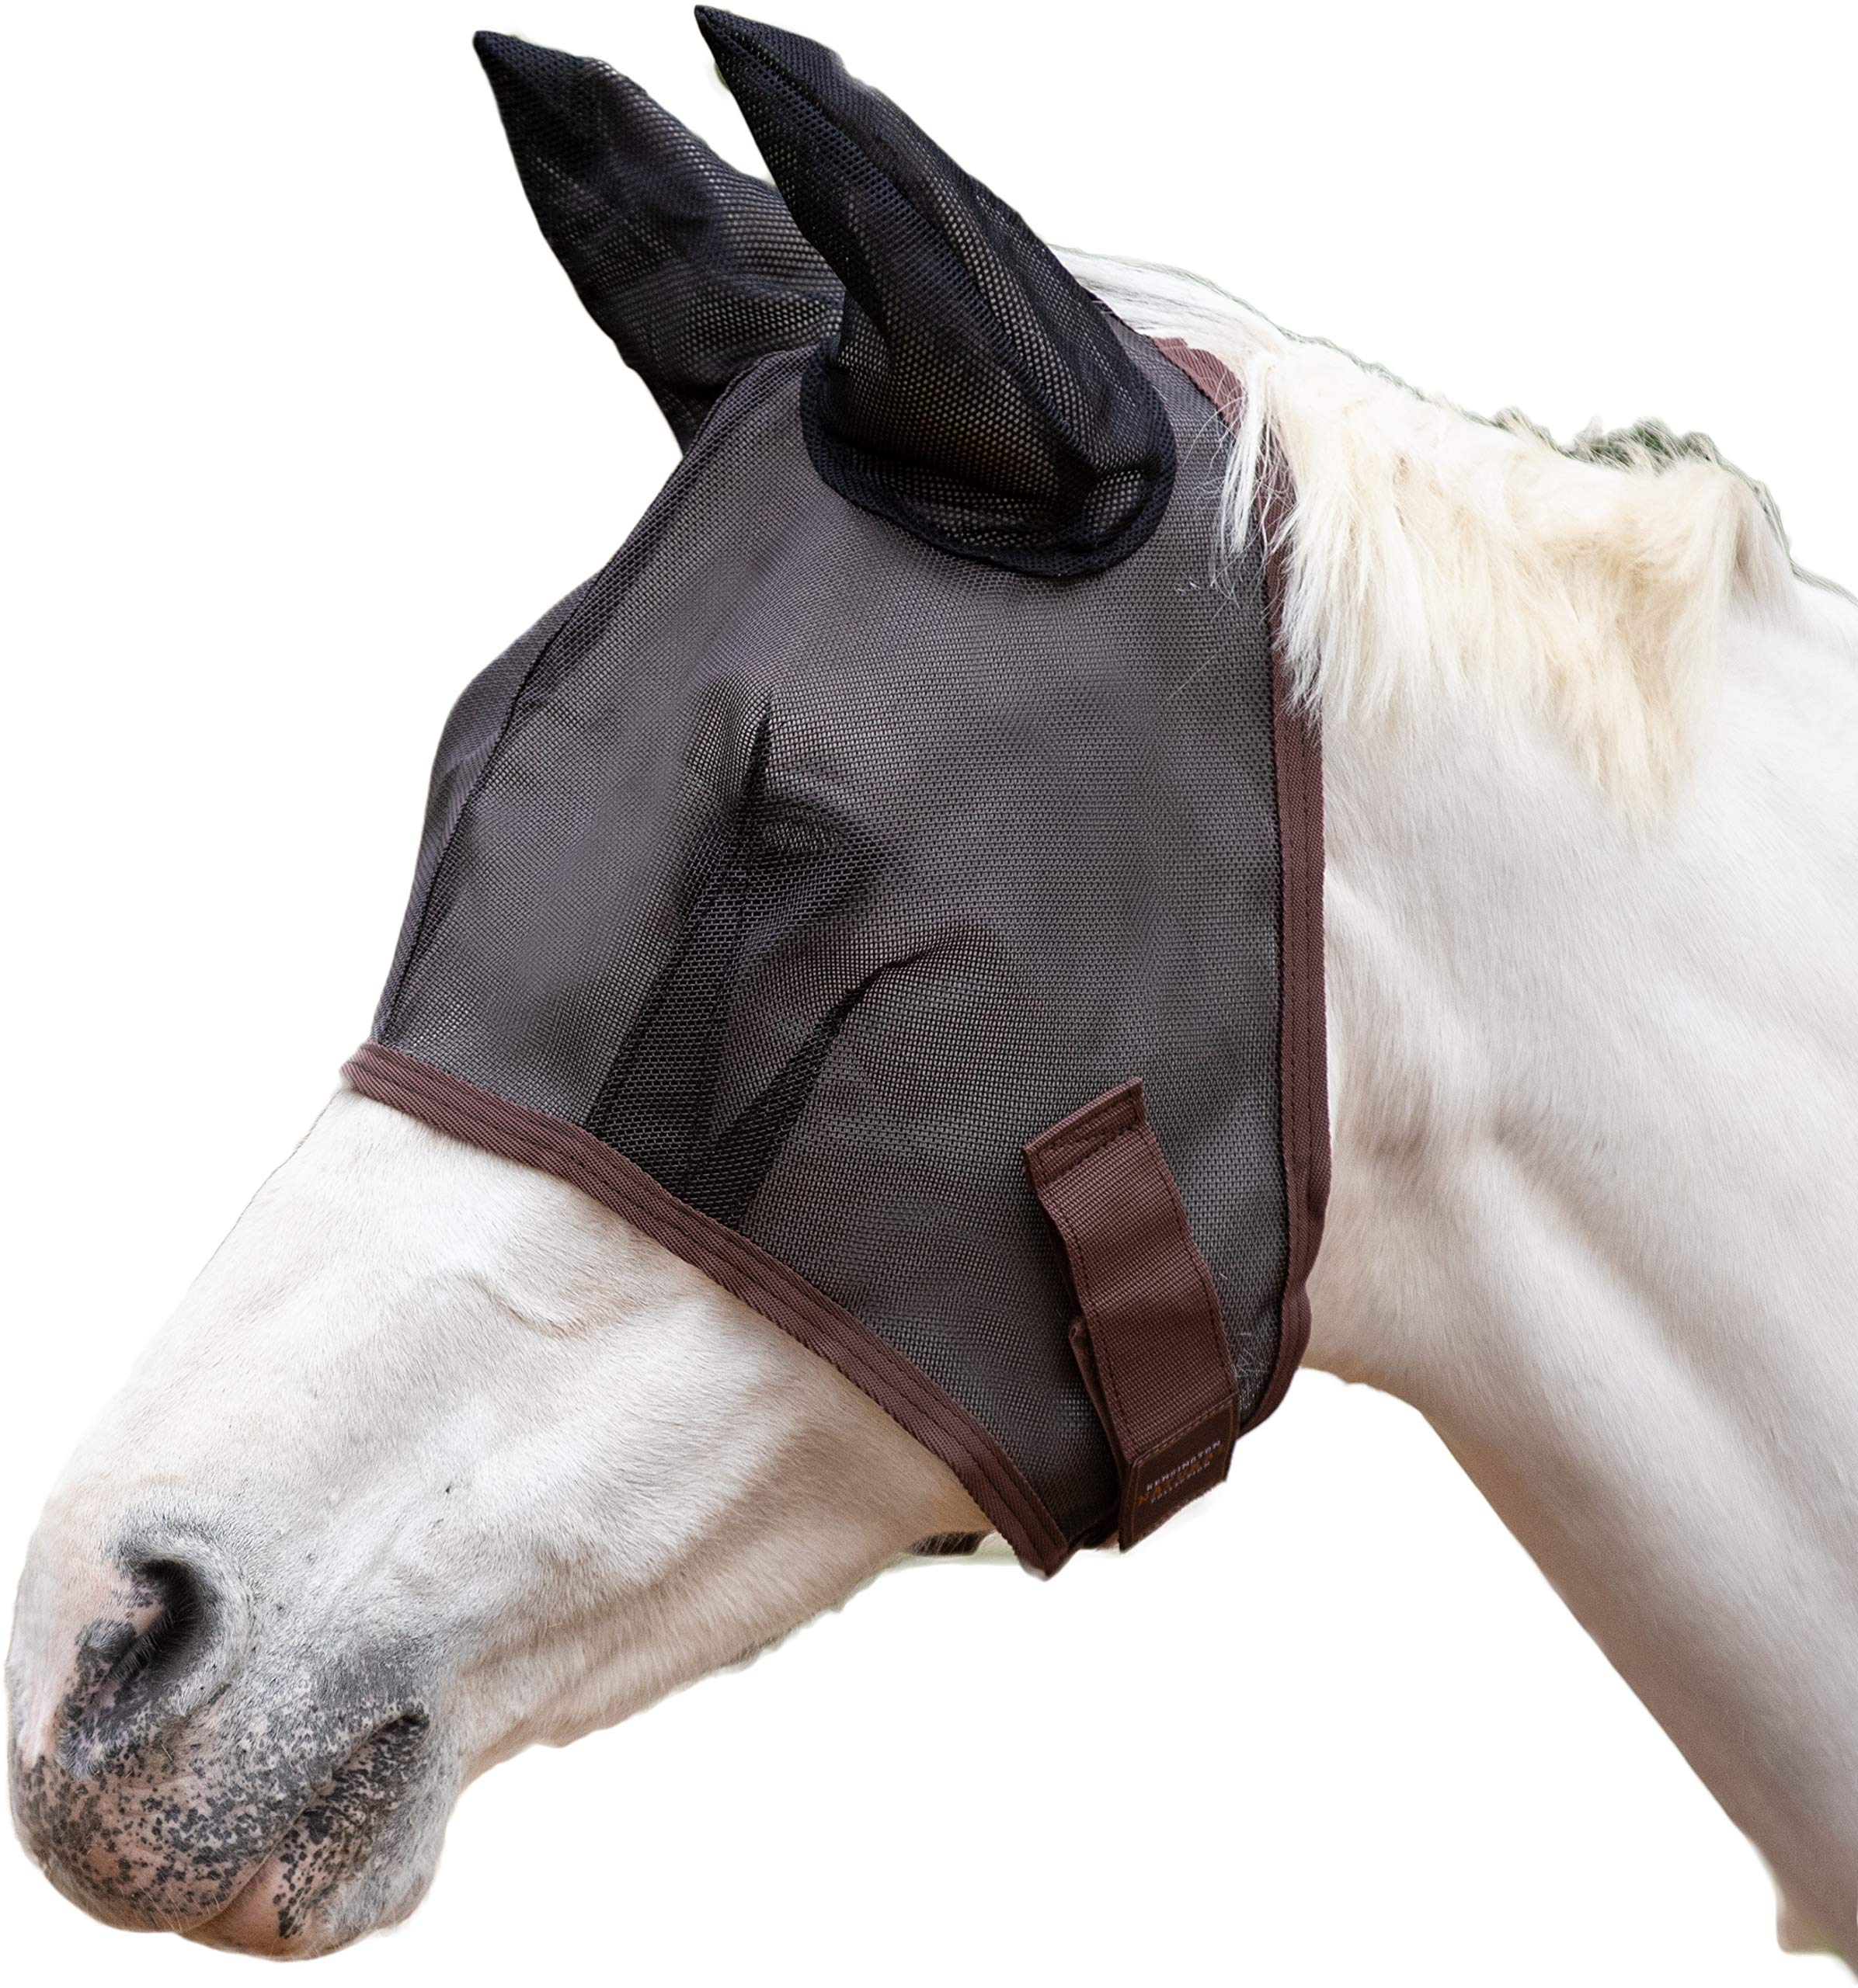 Kensington Signature Fly Mask with Soft Mesh Ears - Protects Horses Face, Nose and Ears from Biting Insects and UV Rays While Allowing Full Visibility (L, Black) by Kensington Protective Products